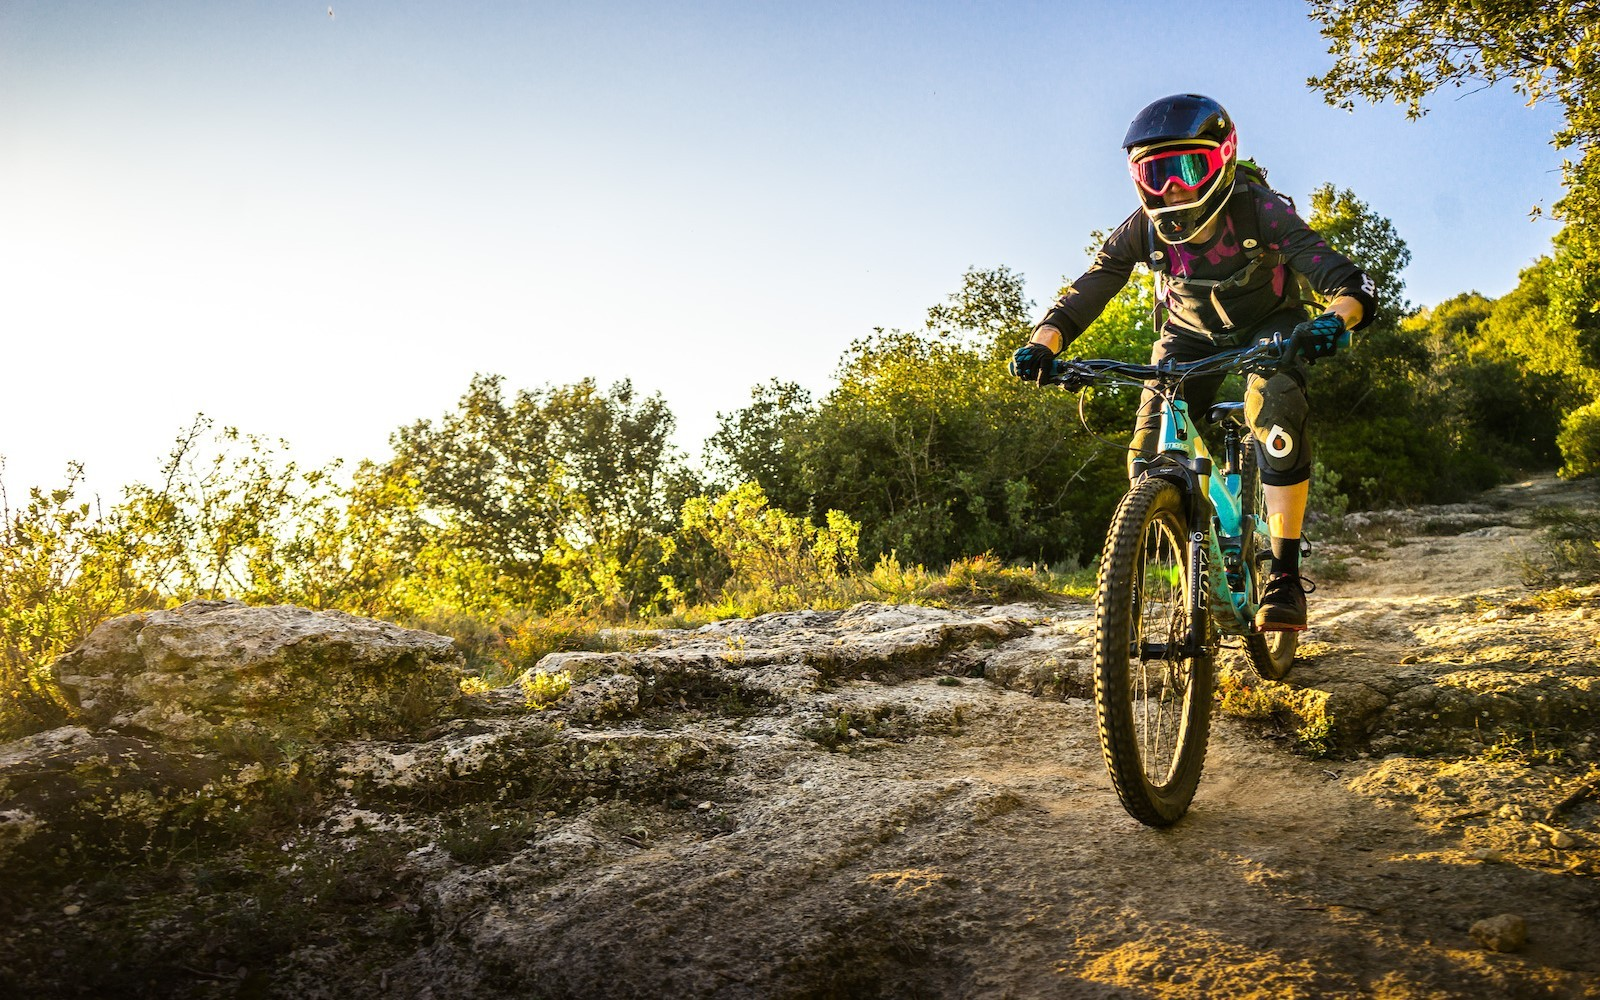 Anime Girl Epic Wallpapers Mountain Bikes Women With Bikes Helmet Bicycle